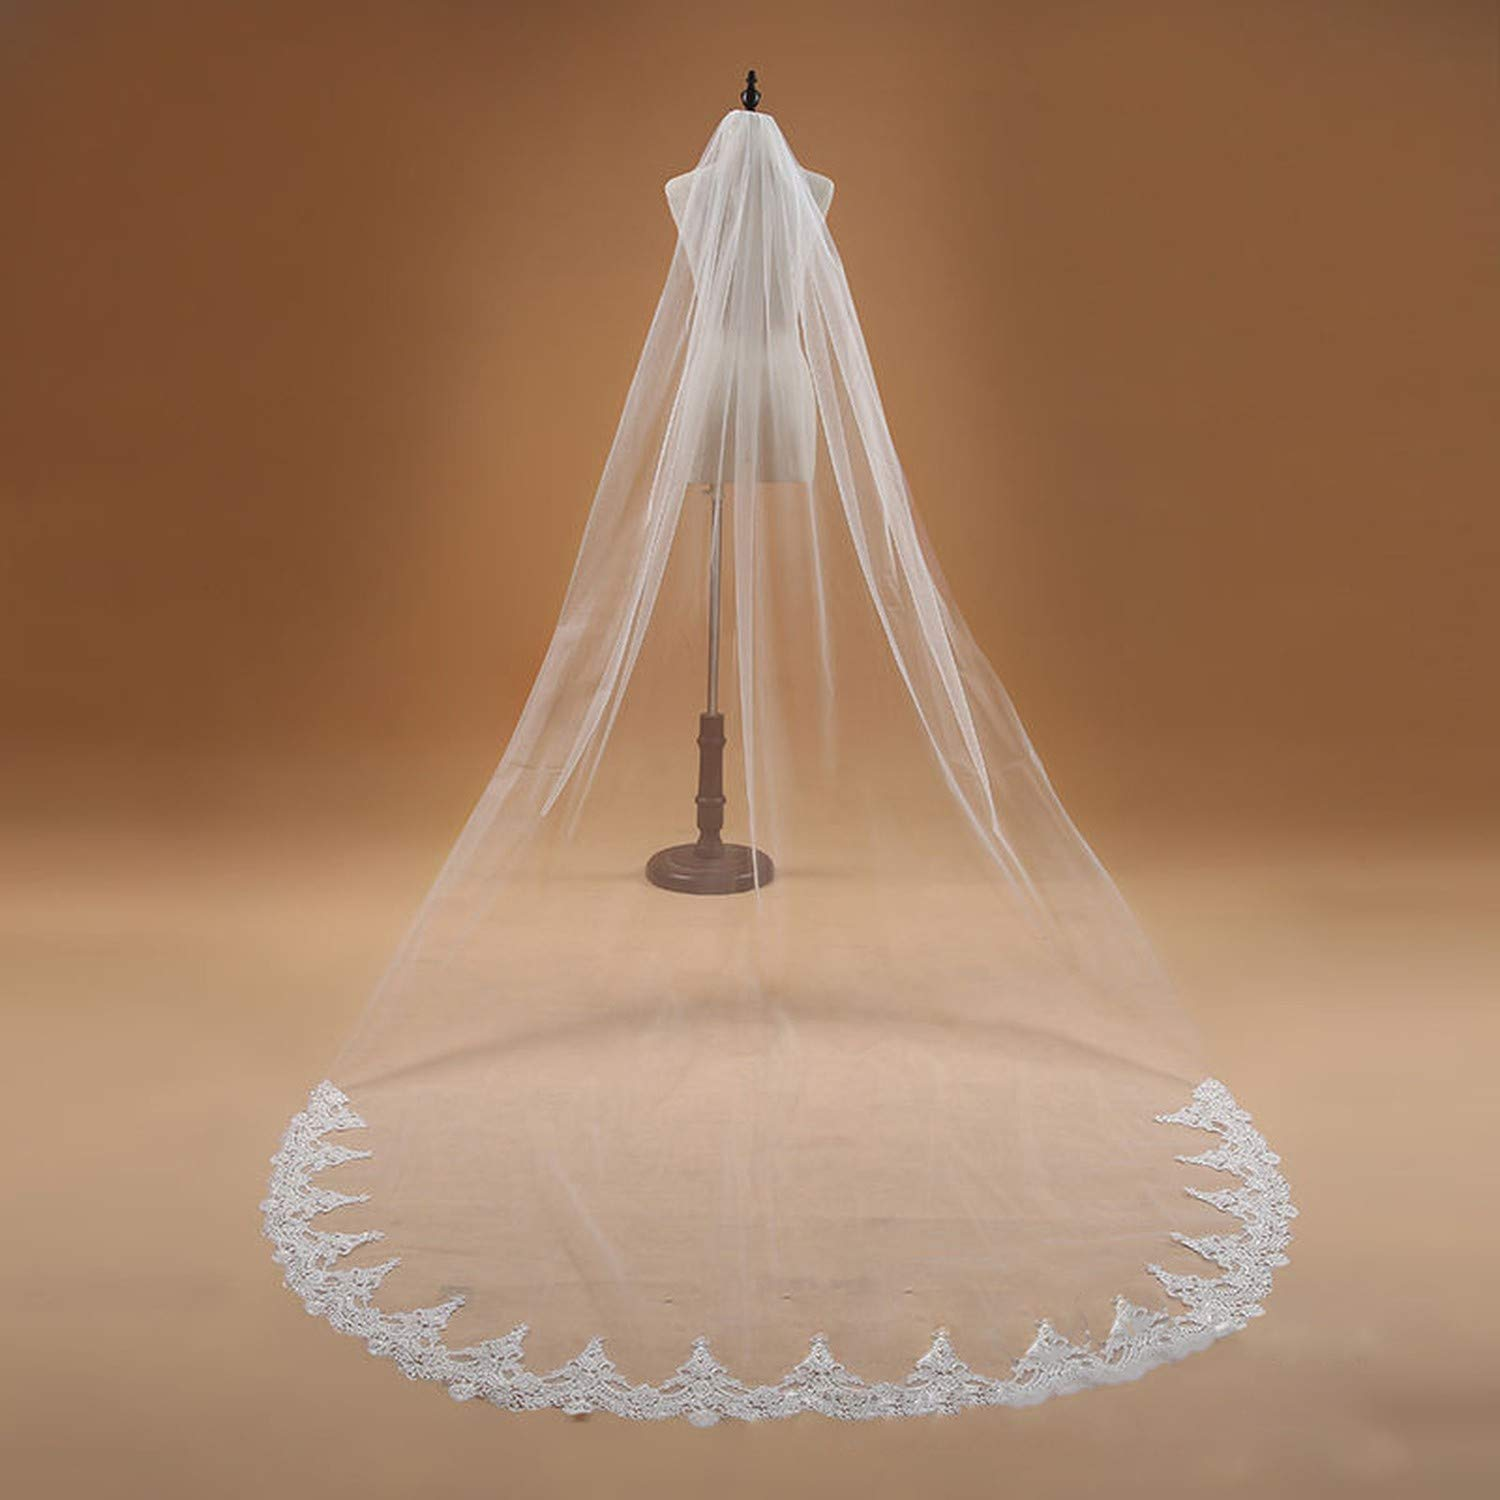 Voile 3M One Layer Lace Edge White Ivory Cathedral Wedding Veil Long Bridal Veil Wedding Accessories